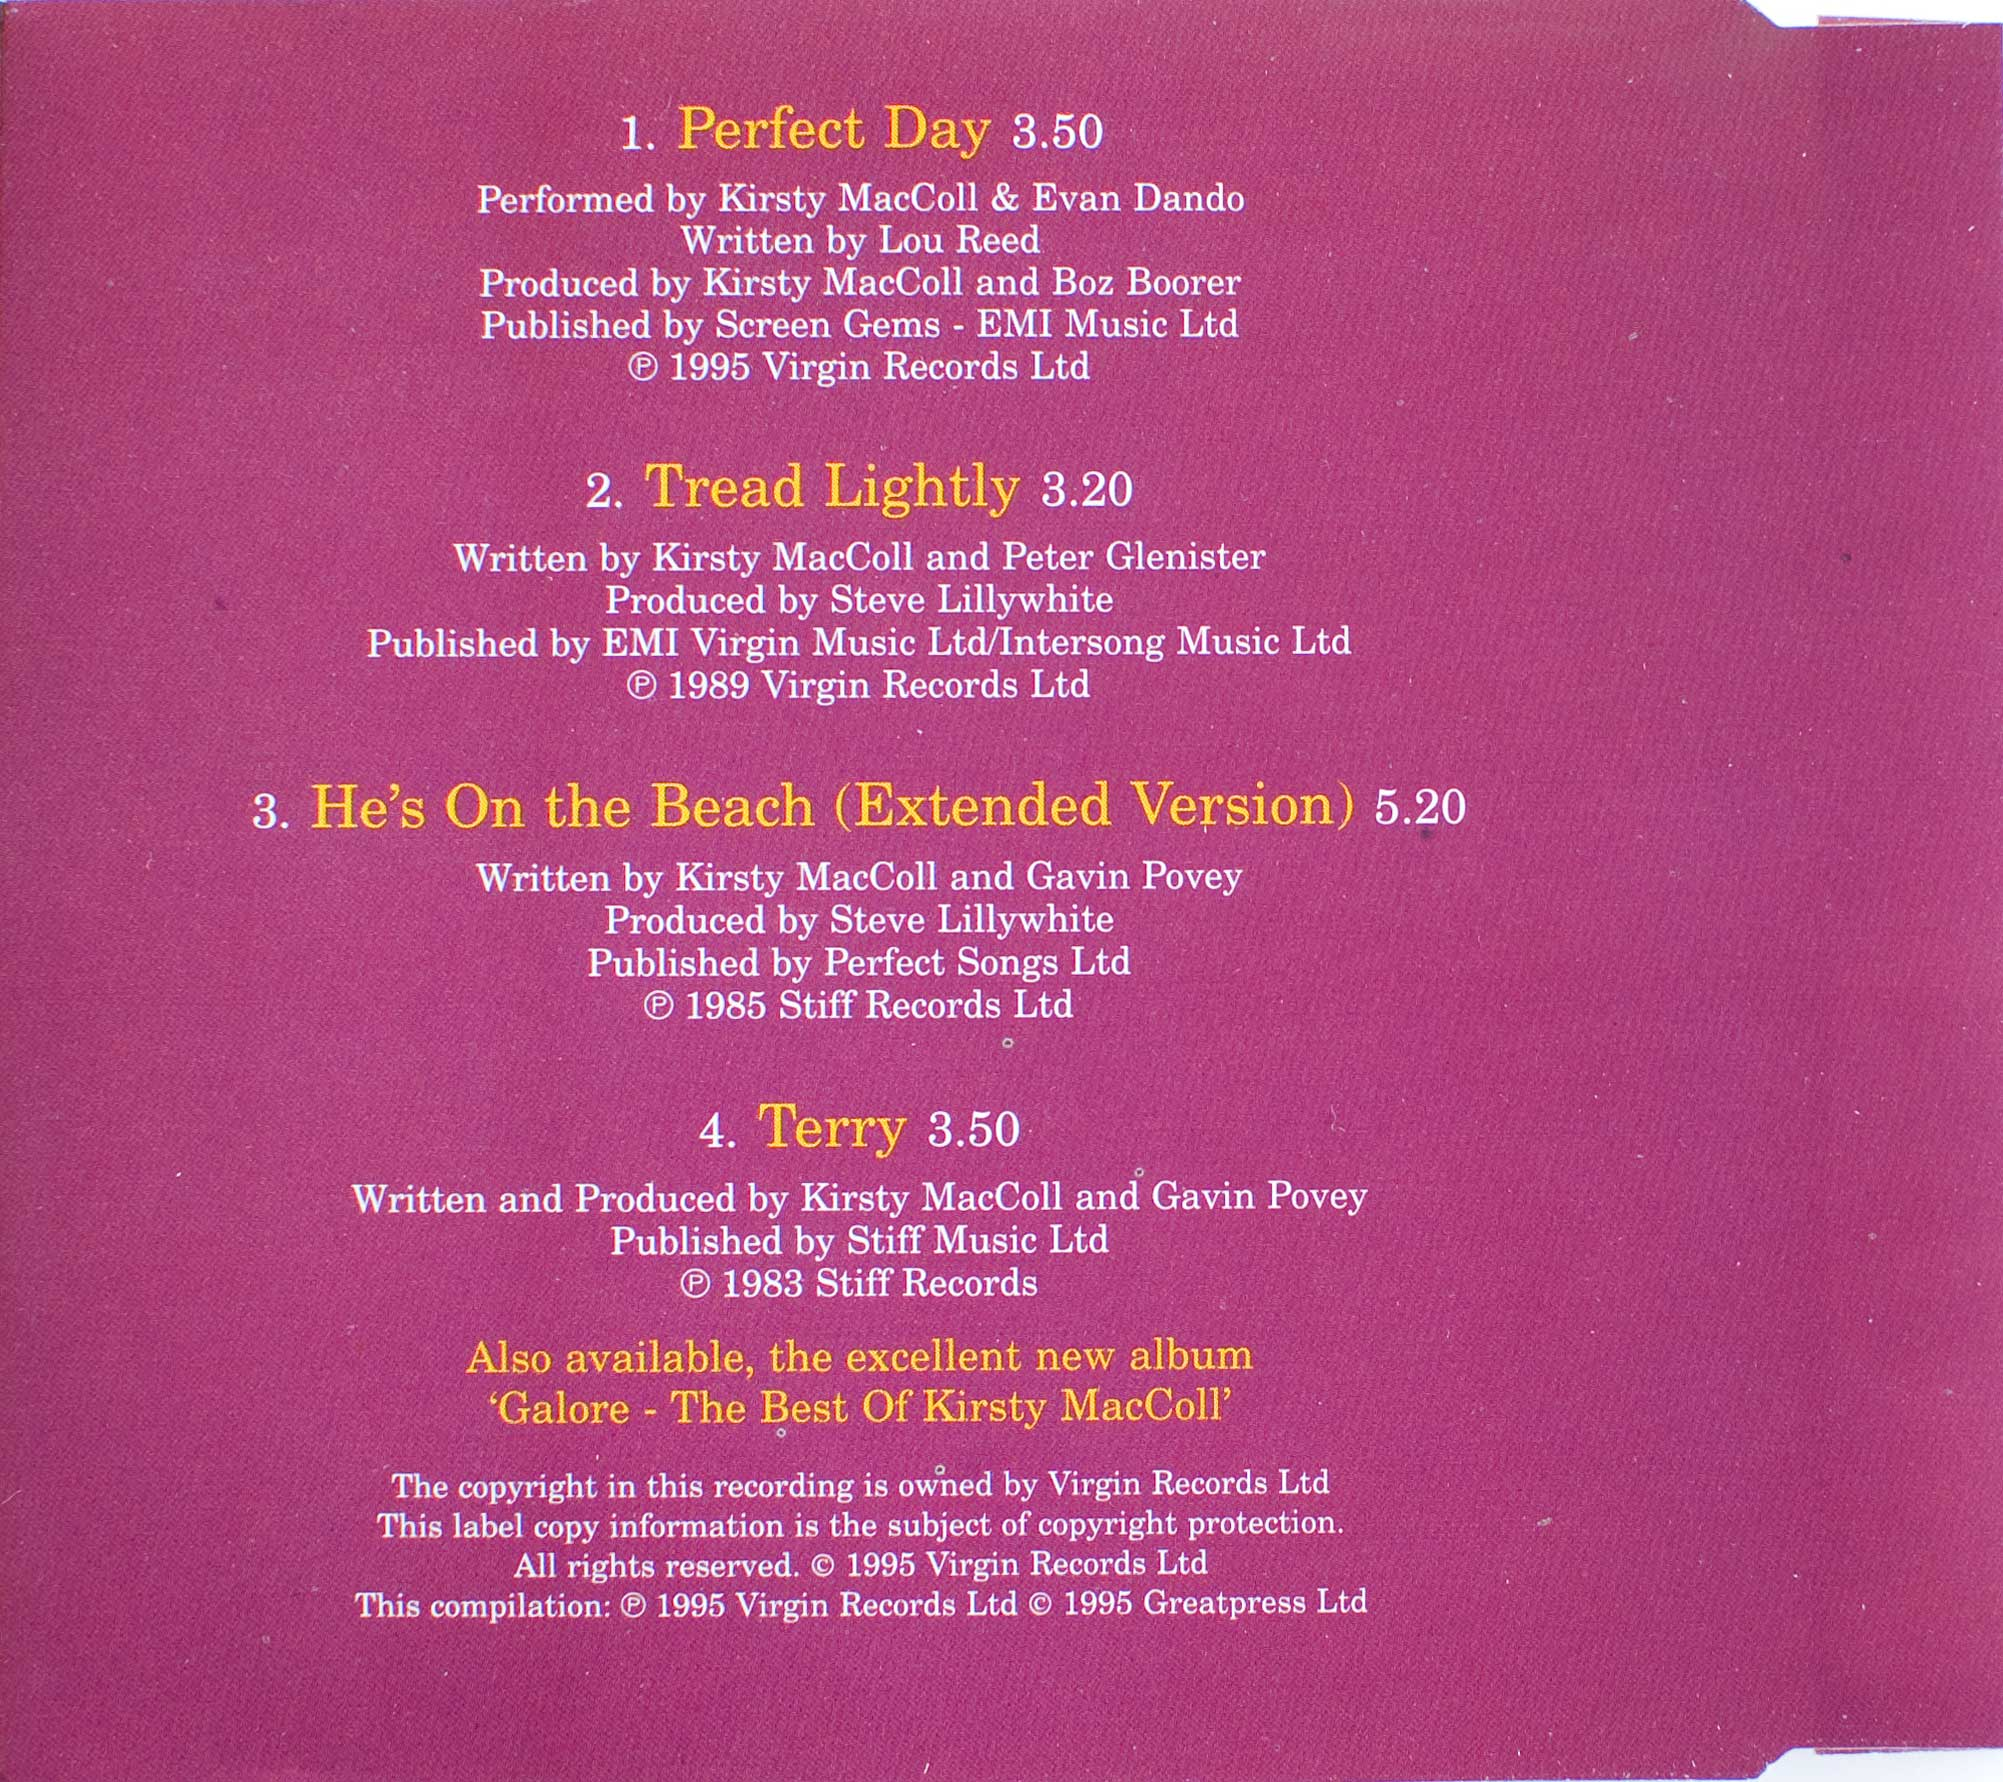 Perfect Day (CD single) back cover